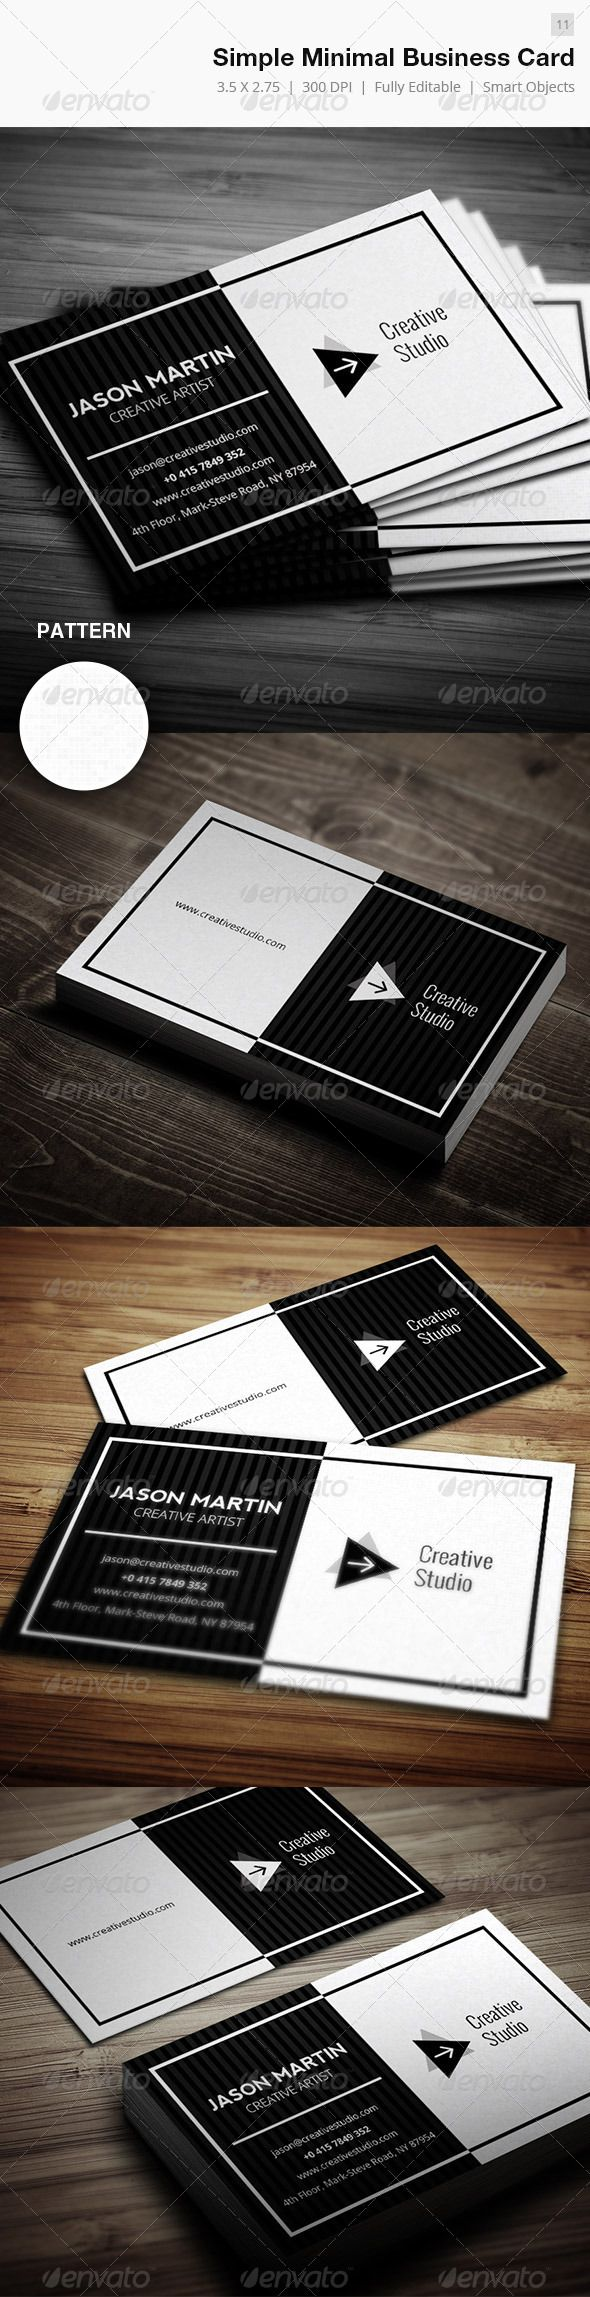 648 best cool business cards images on pinterest fonts arrows simple minimal business card 11 magicingreecefo Choice Image